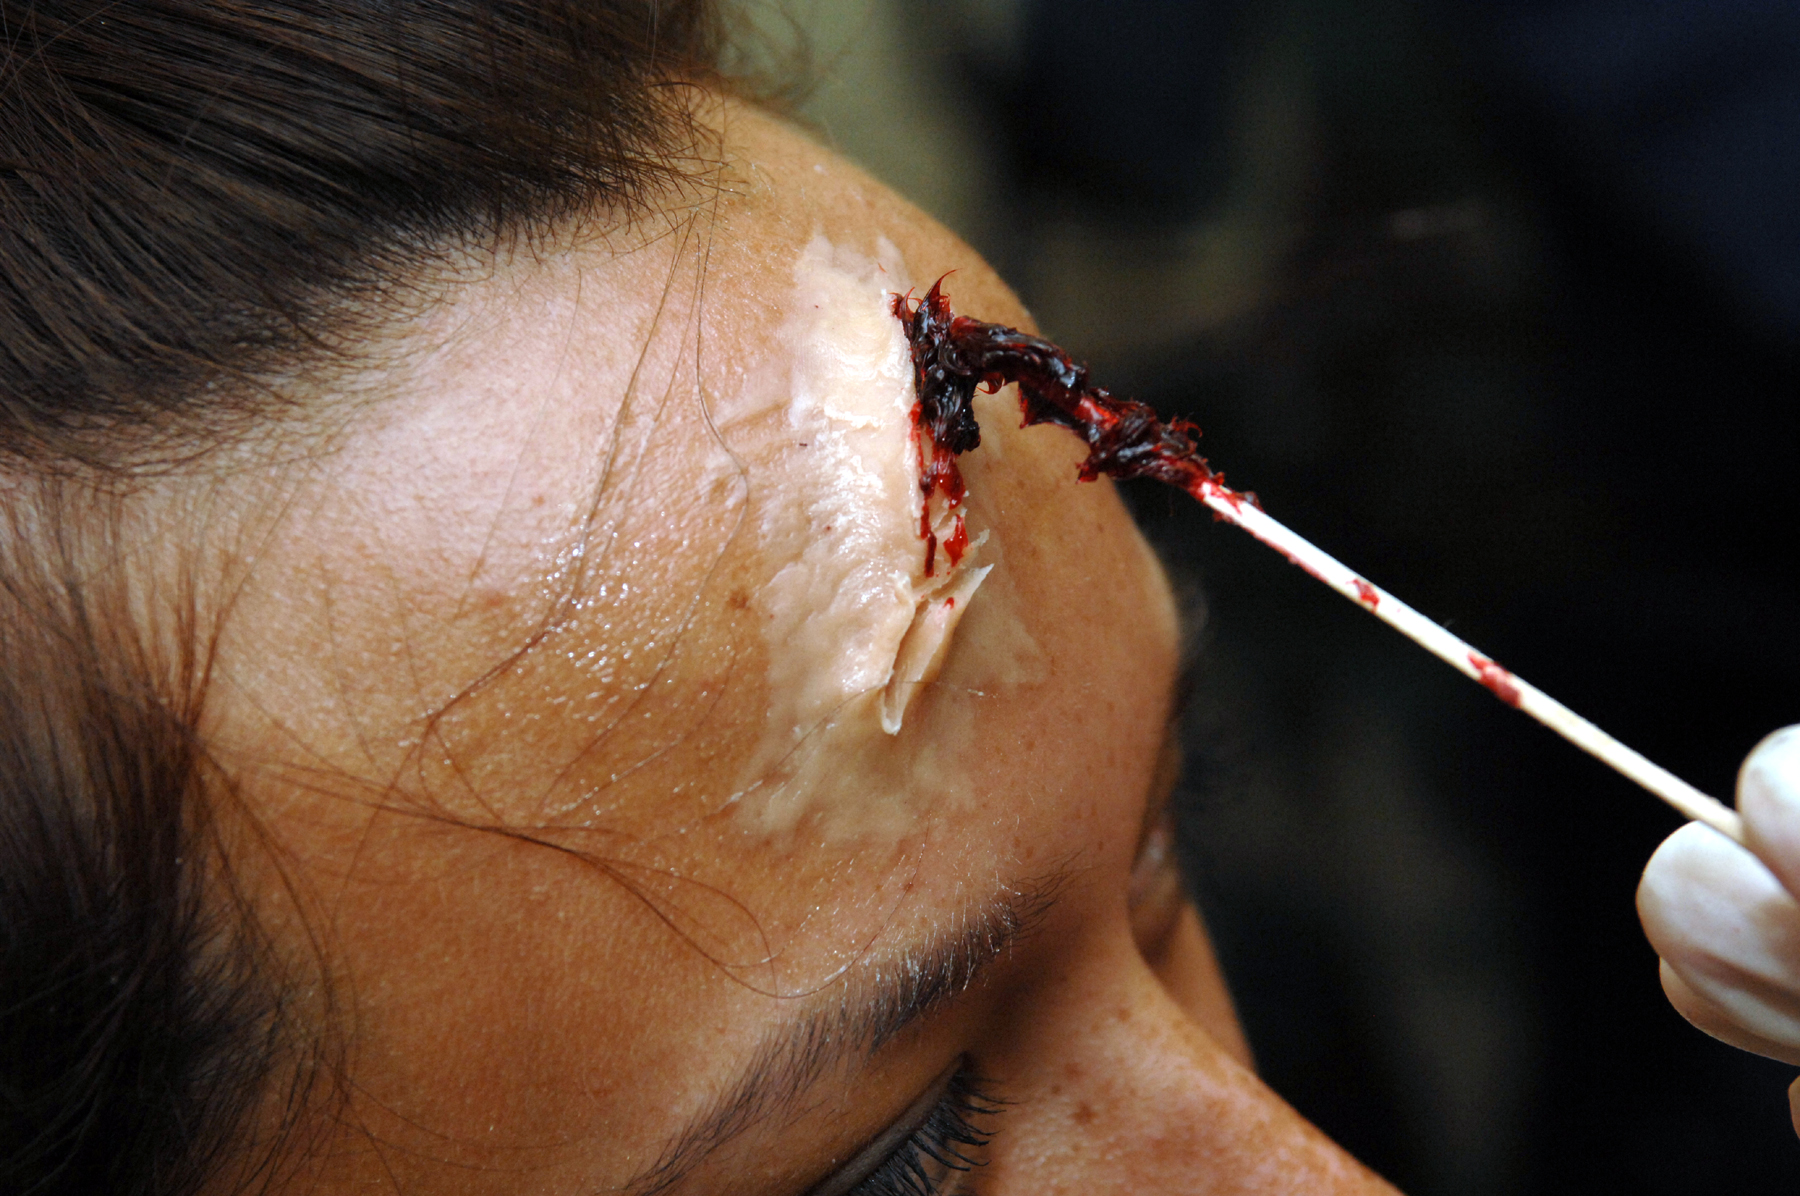 How to make a fake head wound for your performance in just 10 steps.